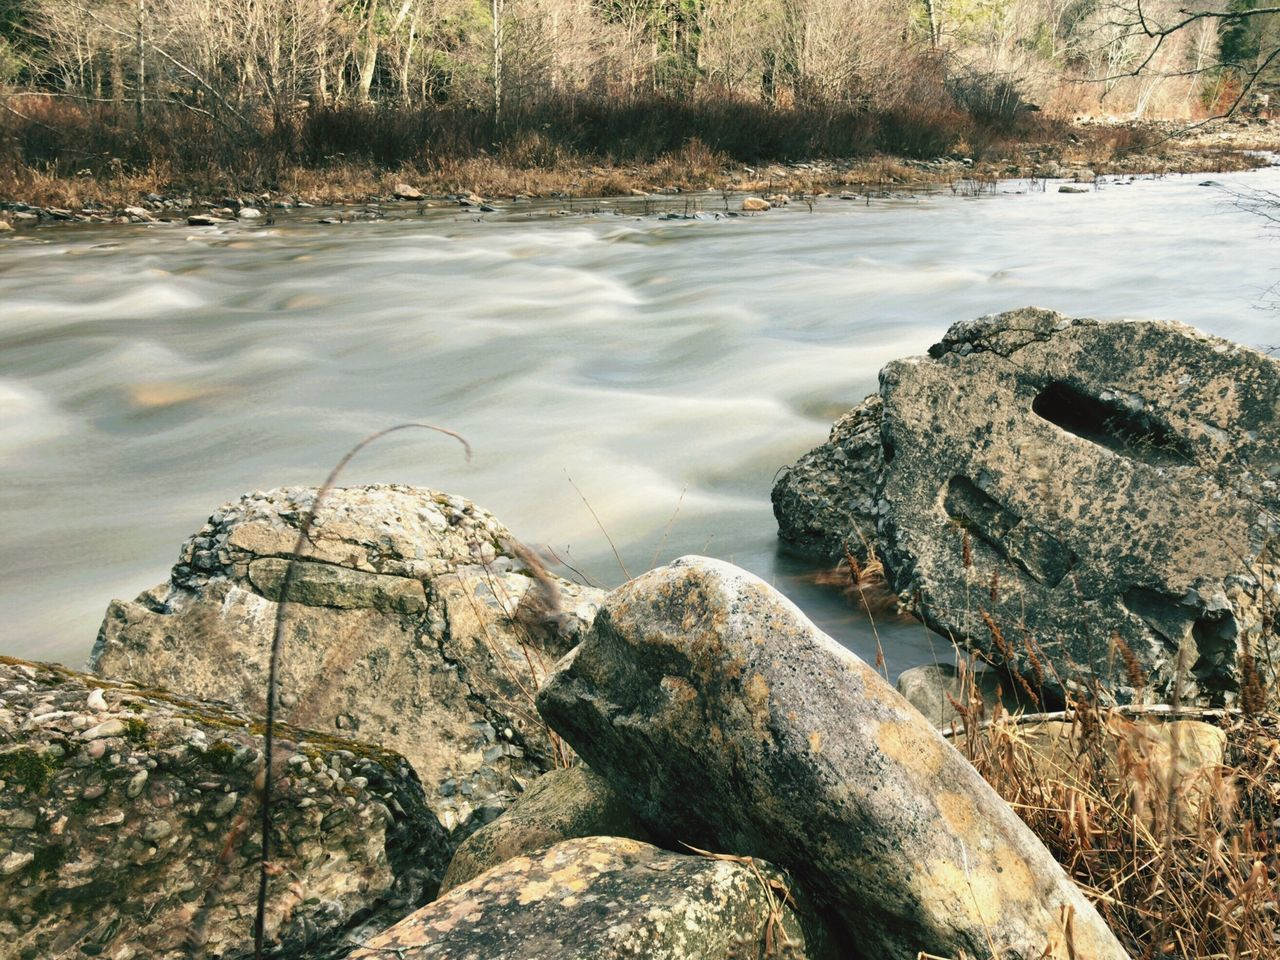 Water River Outdoors Nature Rock - Object Tranquility Beauty In Nature No People Tree Trees And Nature Water Reflections Winter Stream Senic Senic View Flowing Water Flowing Stream Flowing River Flowing Water In A Creek